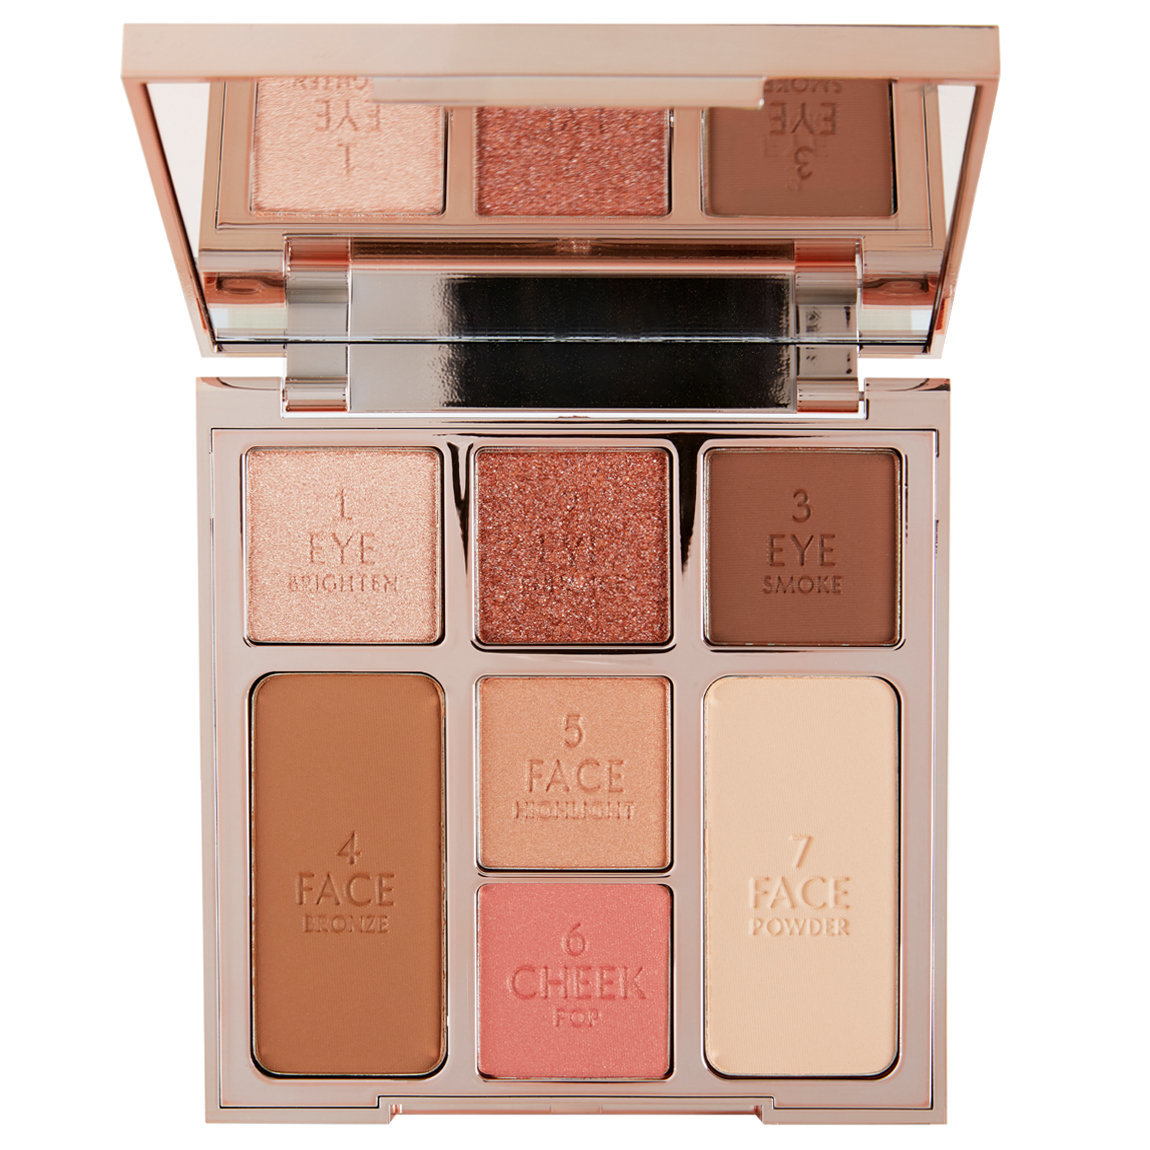 Charlotte Tilbury Instant Look of Love In A Palette Glowing Beauty alternative view 1 - product swatch.